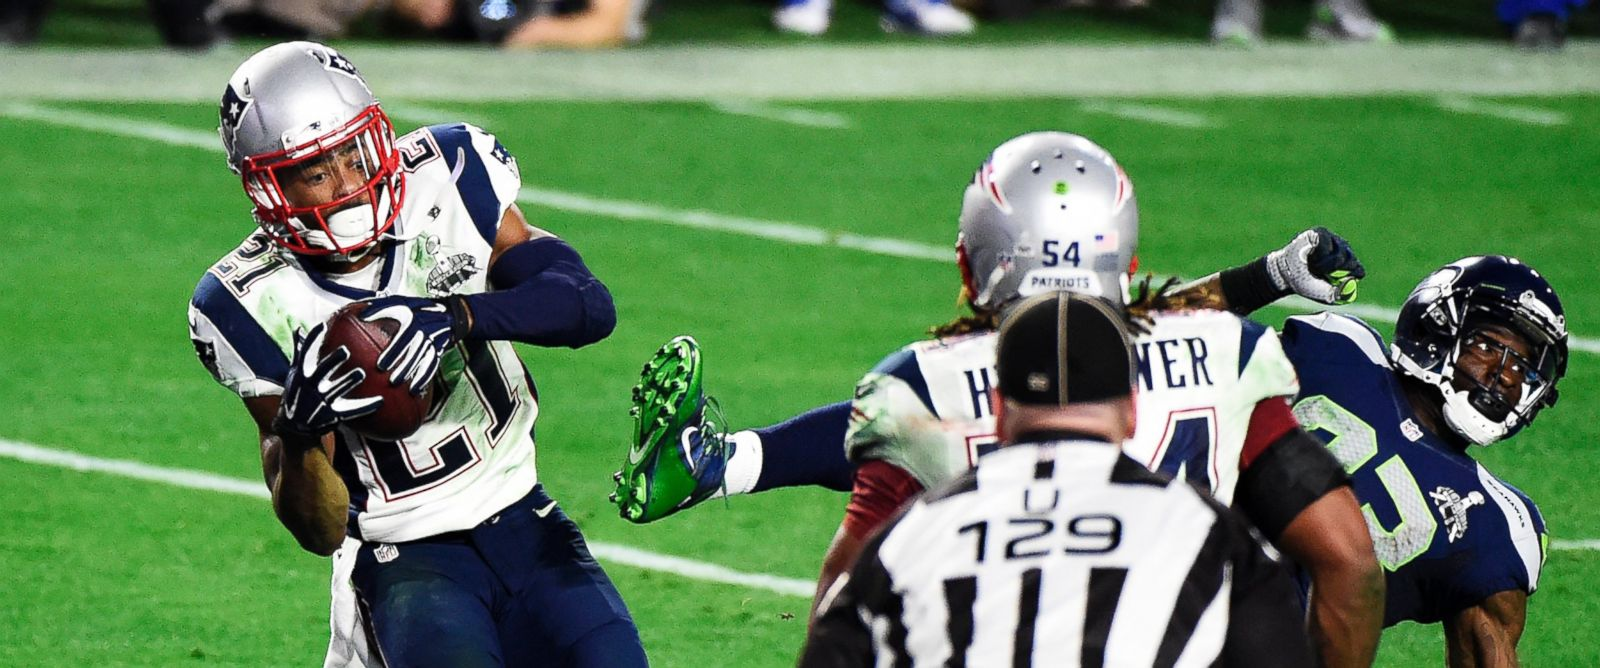 PHOTO: Malcolm Butler #21 of the New England Patriots makes an interception against the Seattle Seahawks in the fourth quarter during Super Bowl XLIX on Feb. 1, 2015, in Glendale, Ariz.